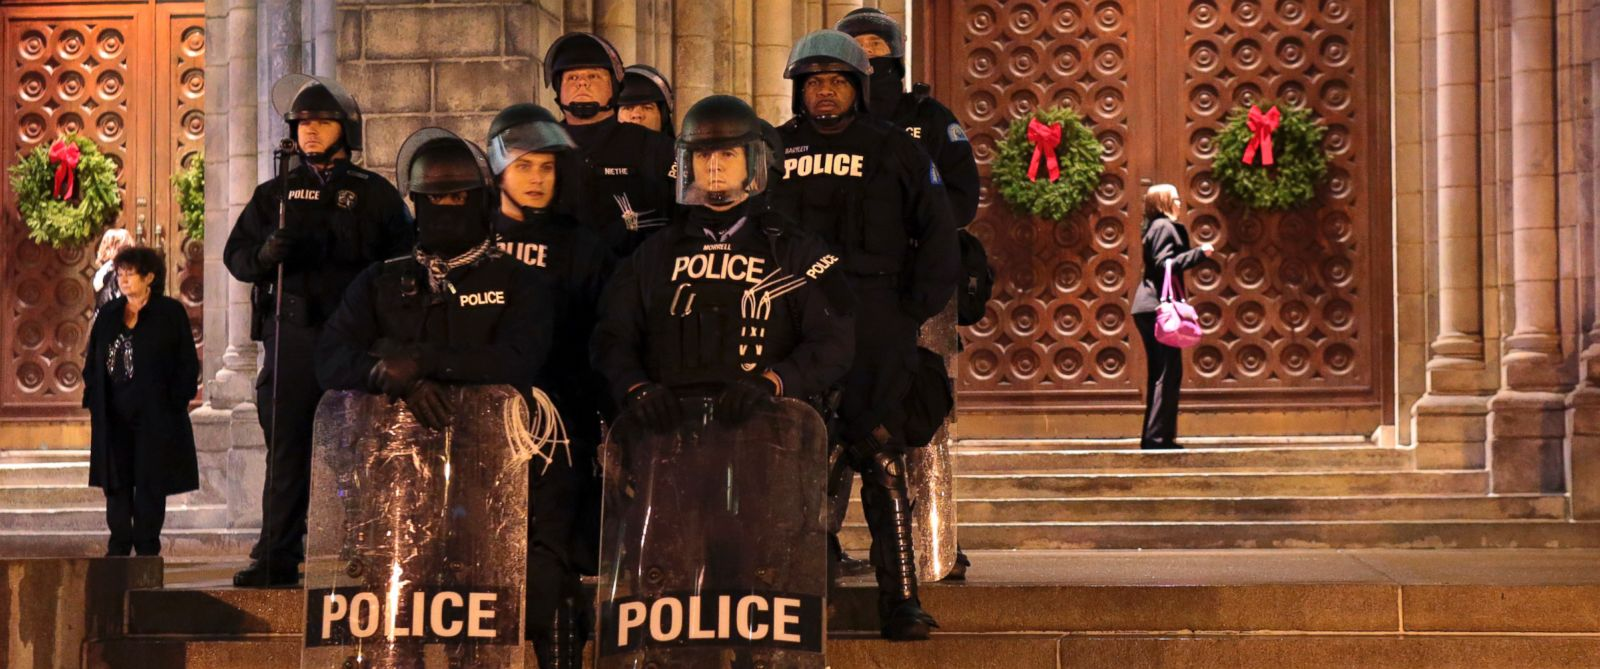 PHOTO: St. Louis Police officers guard the entrance to the Cathedral Basilica before Midnight Mass as protesters held a candlelight vigil, Dec. 24, 2014, in St. Louis.